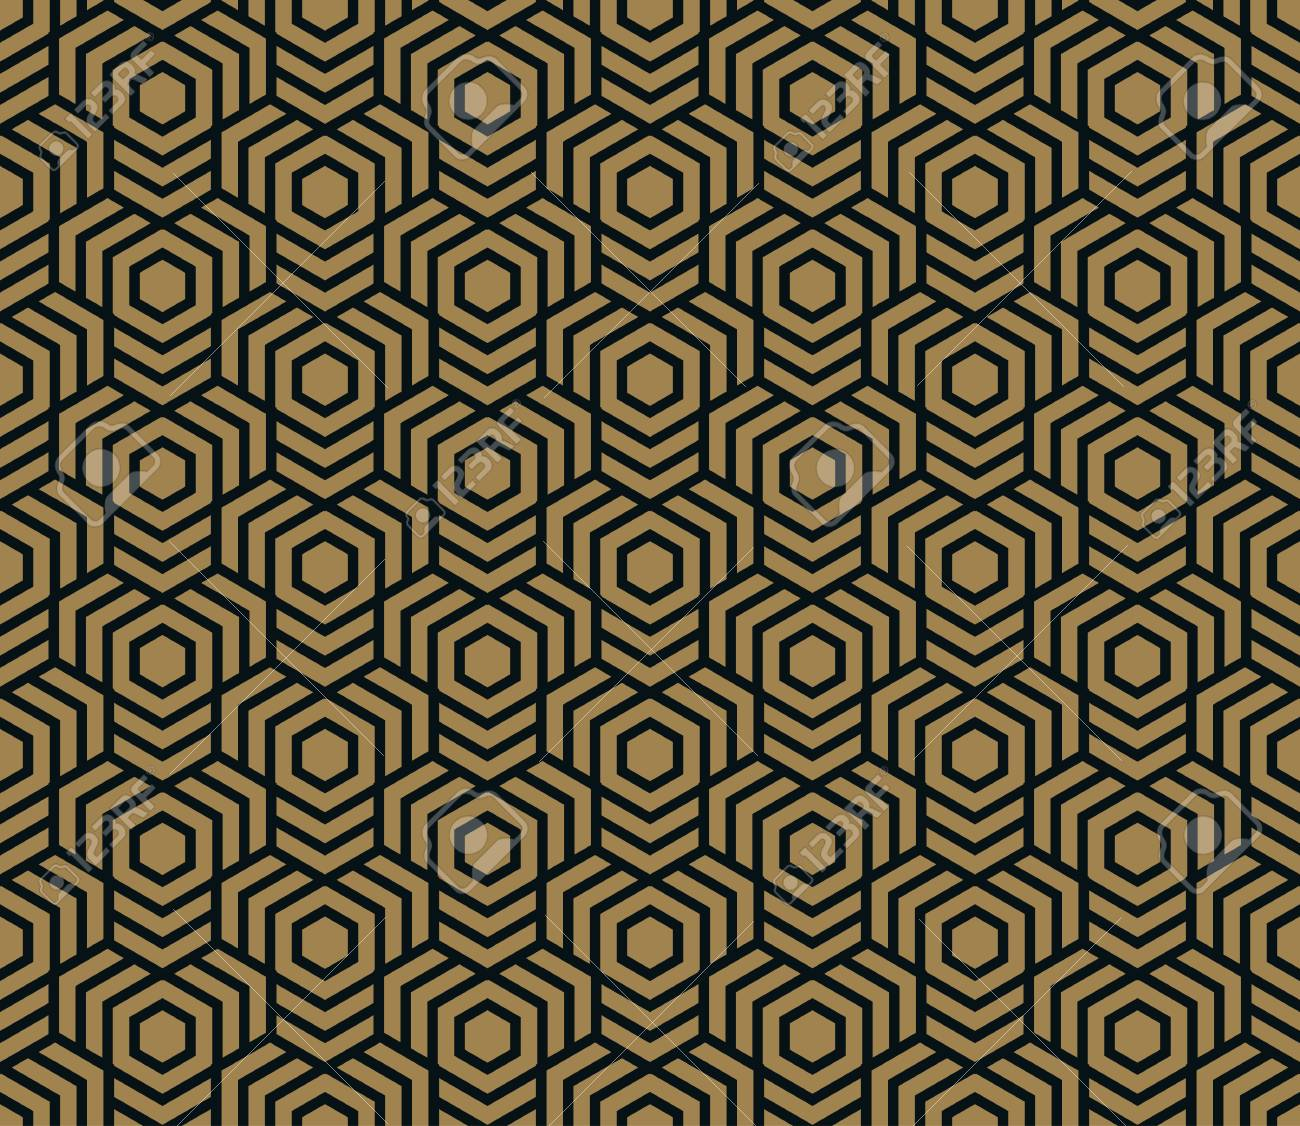 Seamless pattern. Elegant linear ornament. Geometric stylish background. Vector repeating texture - 101114335